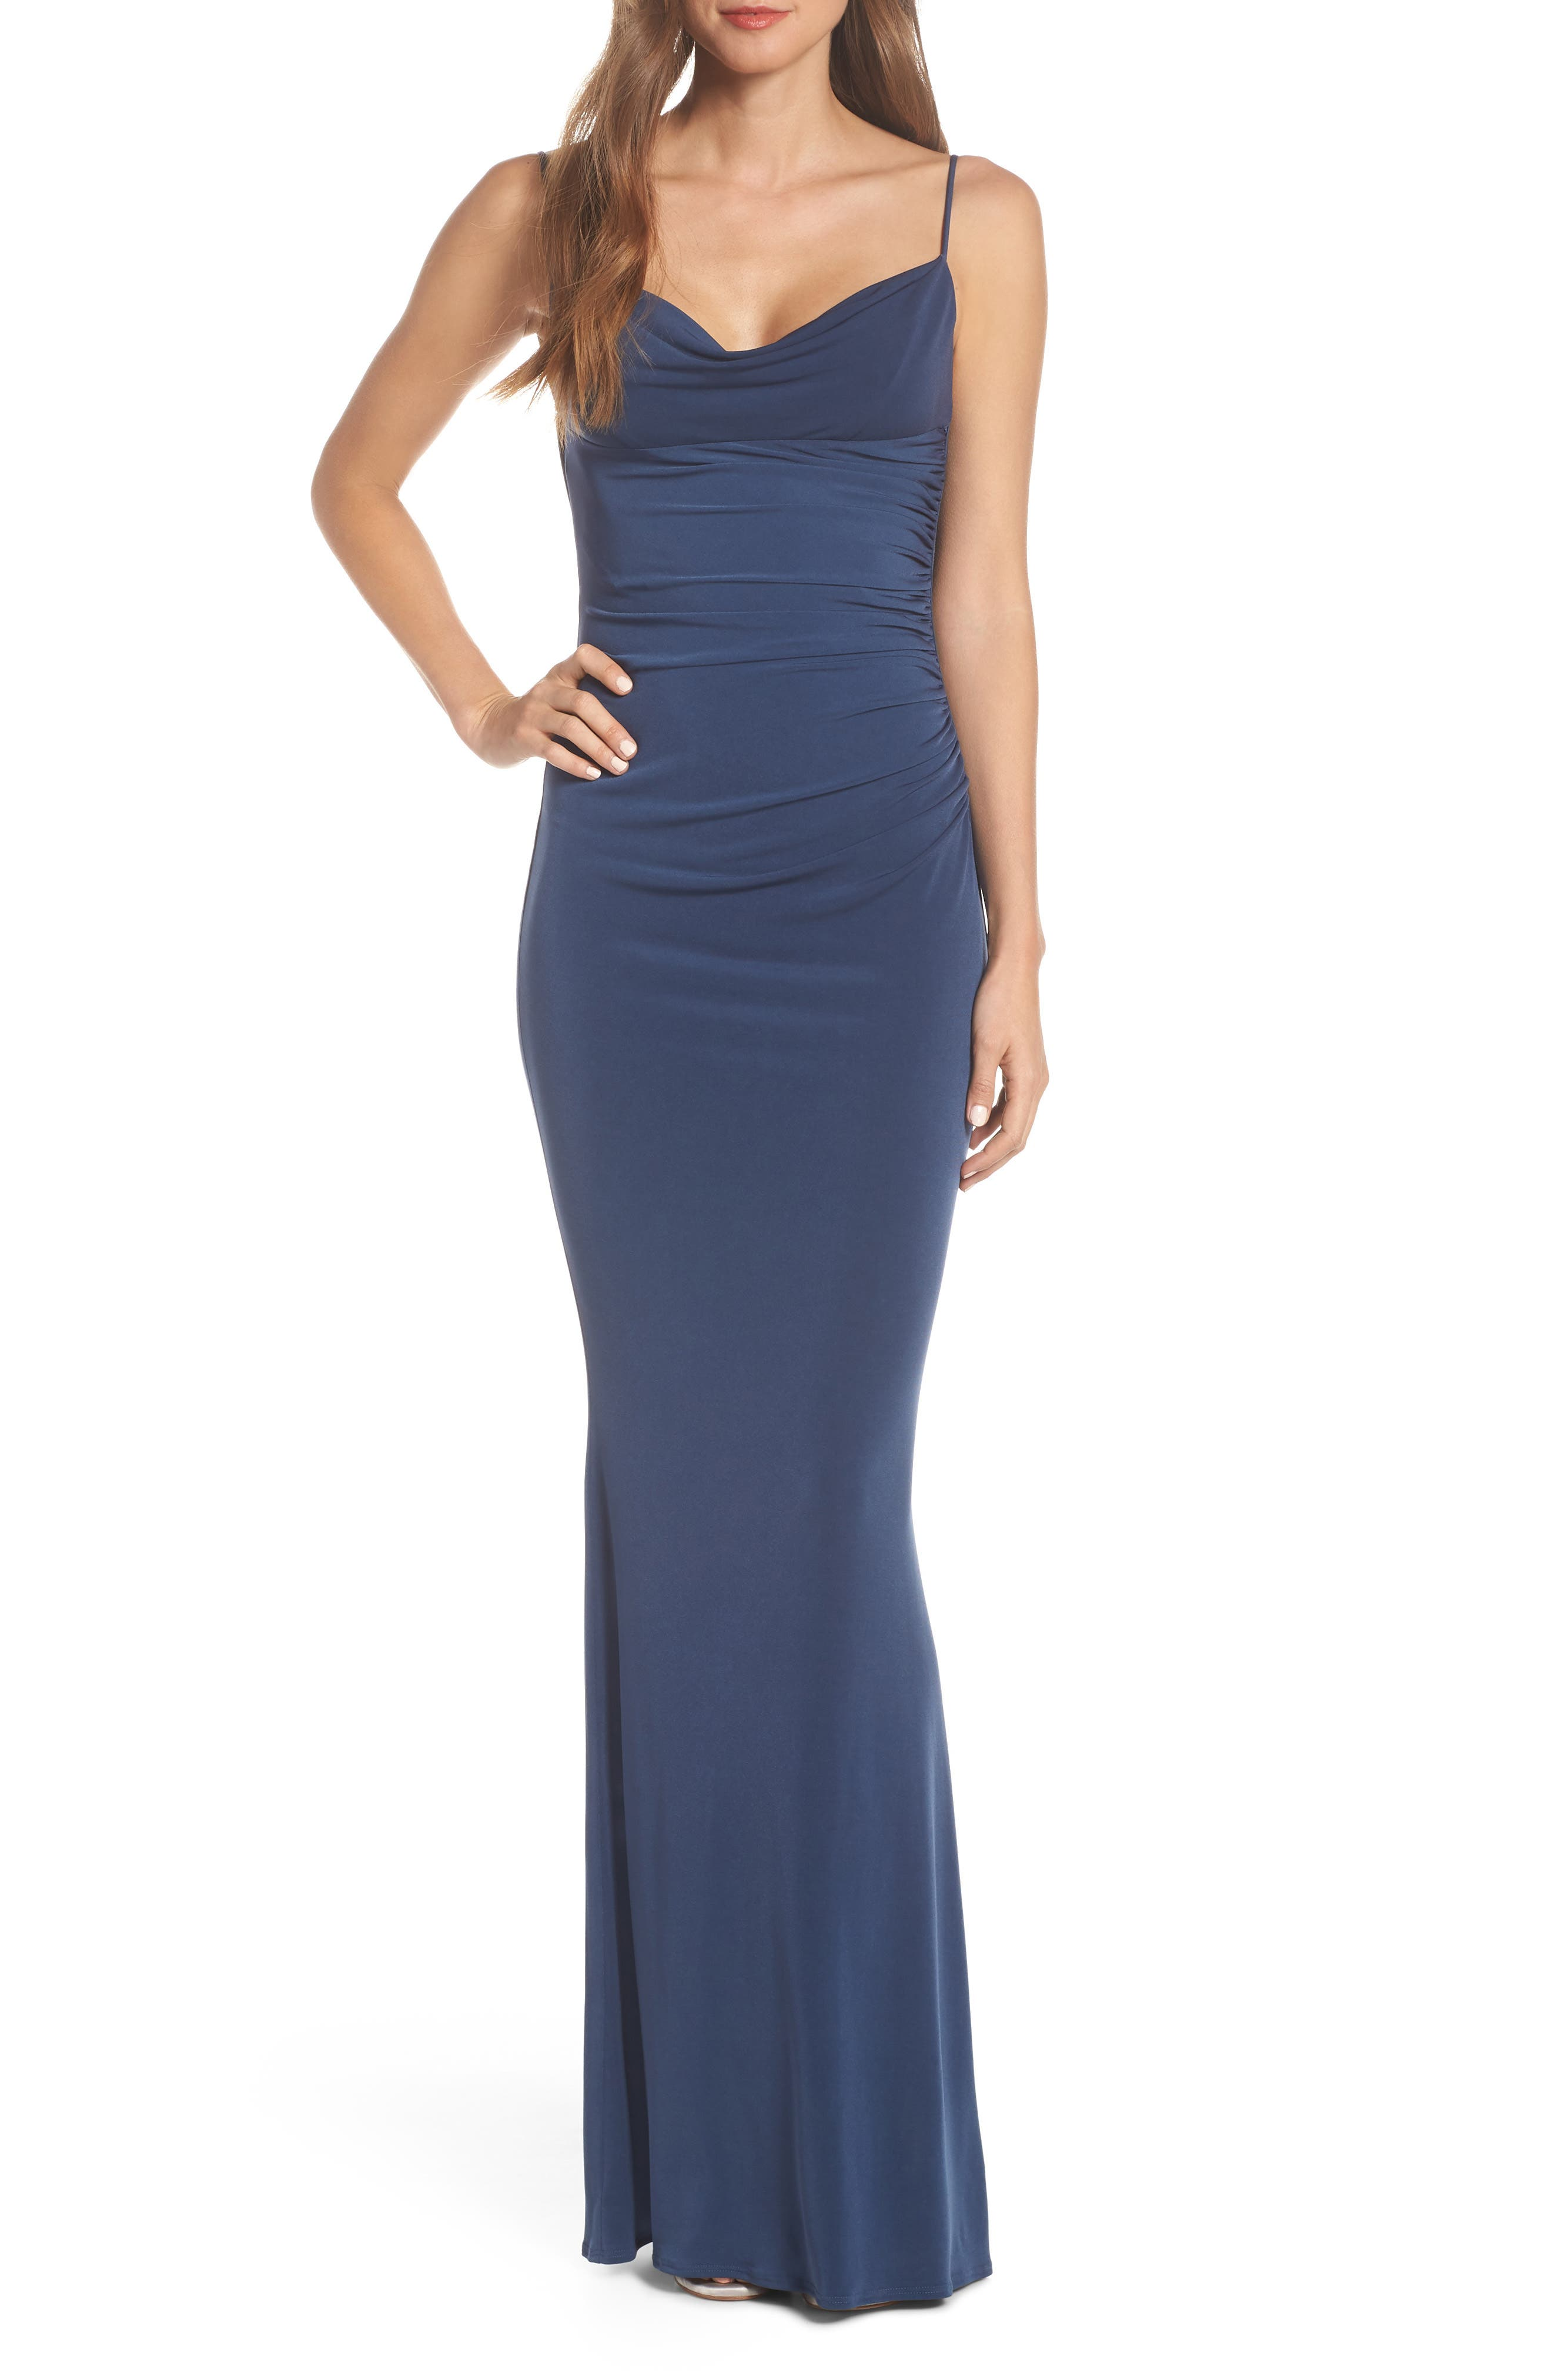 Katie May Surreal Cowl Back Evening Dress, Green